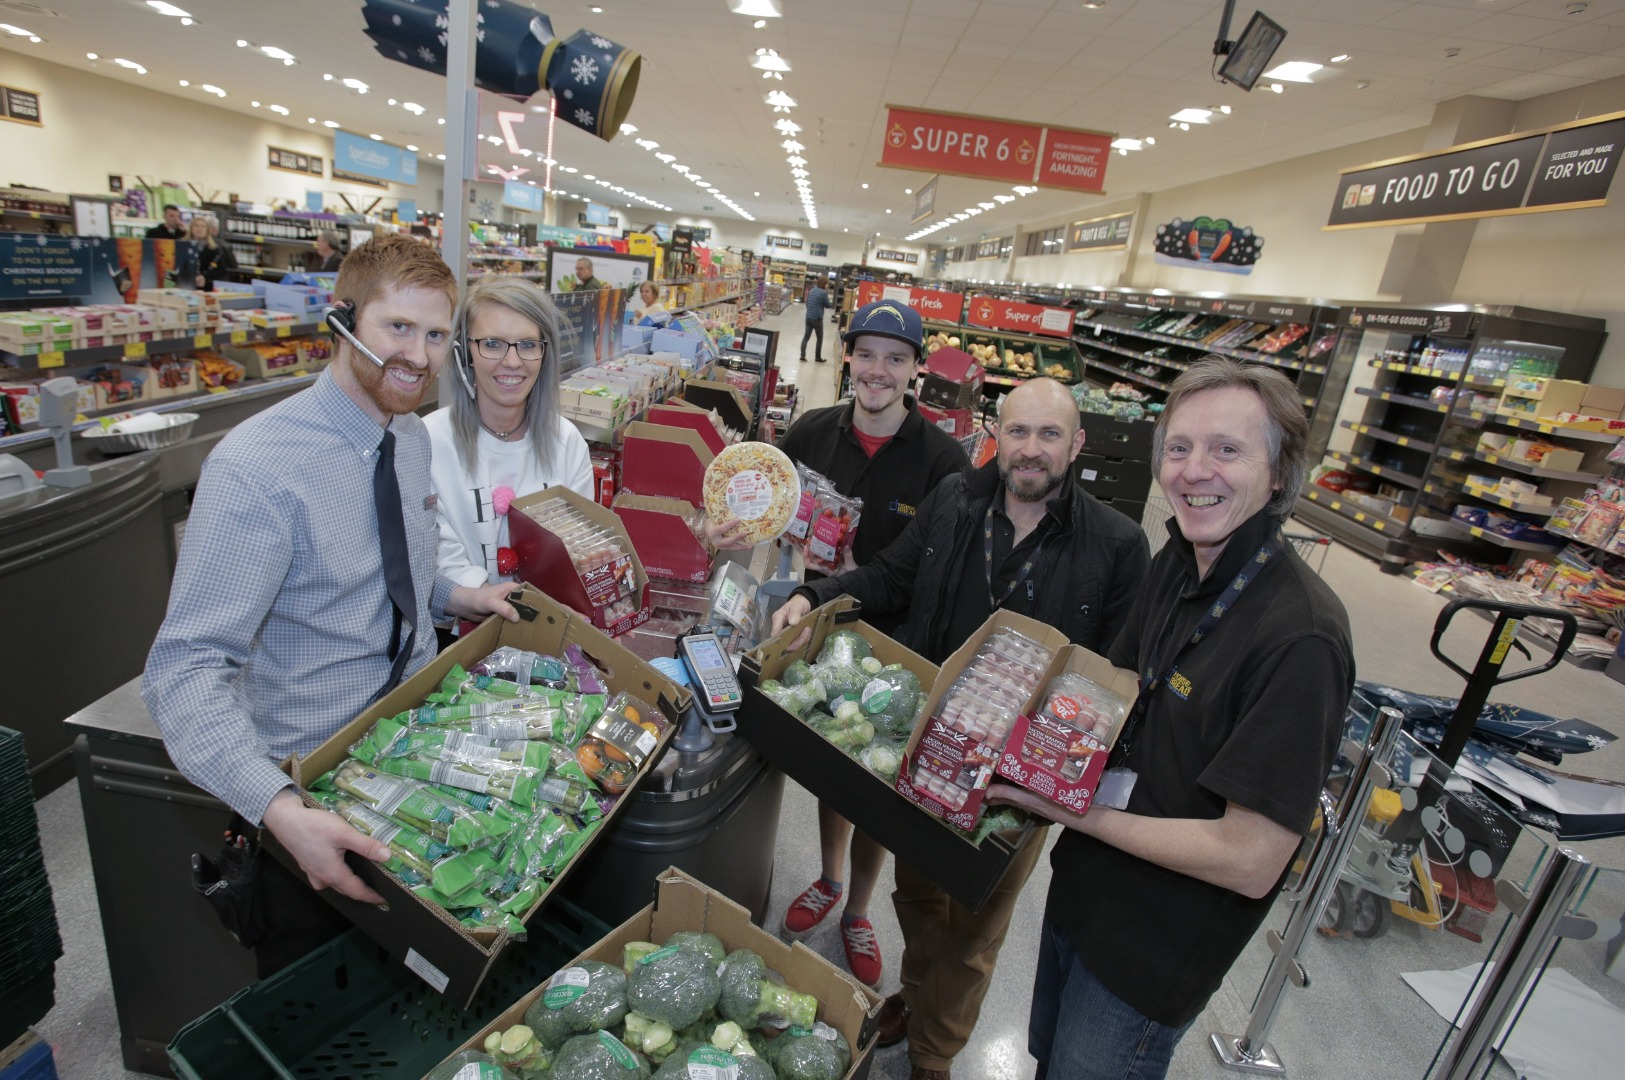 ALDI'S HORWICH AND WESTHOUGHTON STORES PARTNER WITH LOCAL CHARITIES